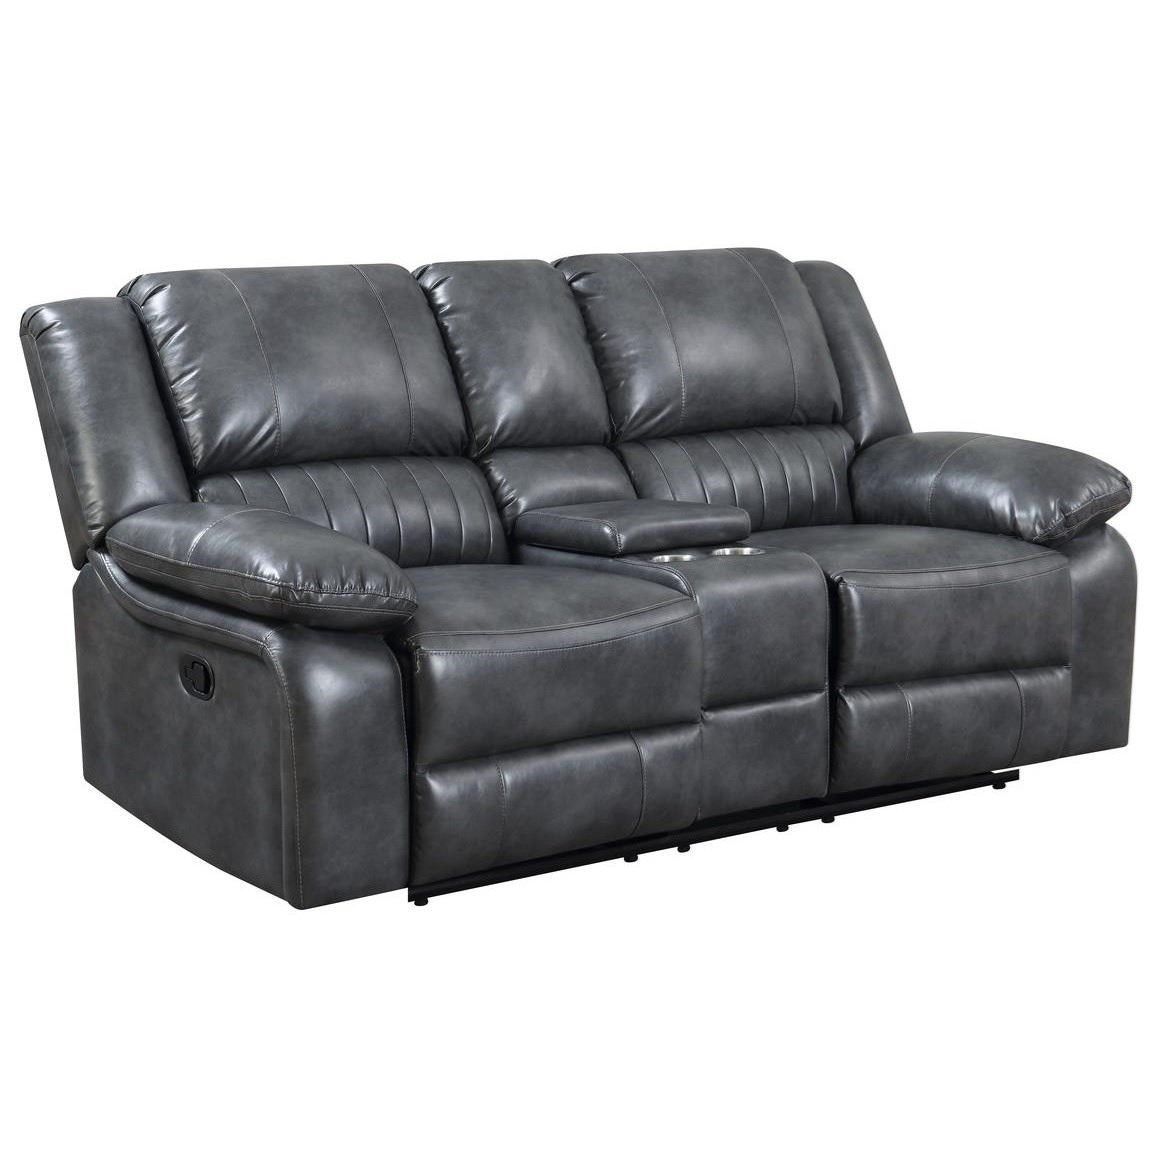 Navaro Reclining Console Loveseat by Emerald at Wilson's Furniture